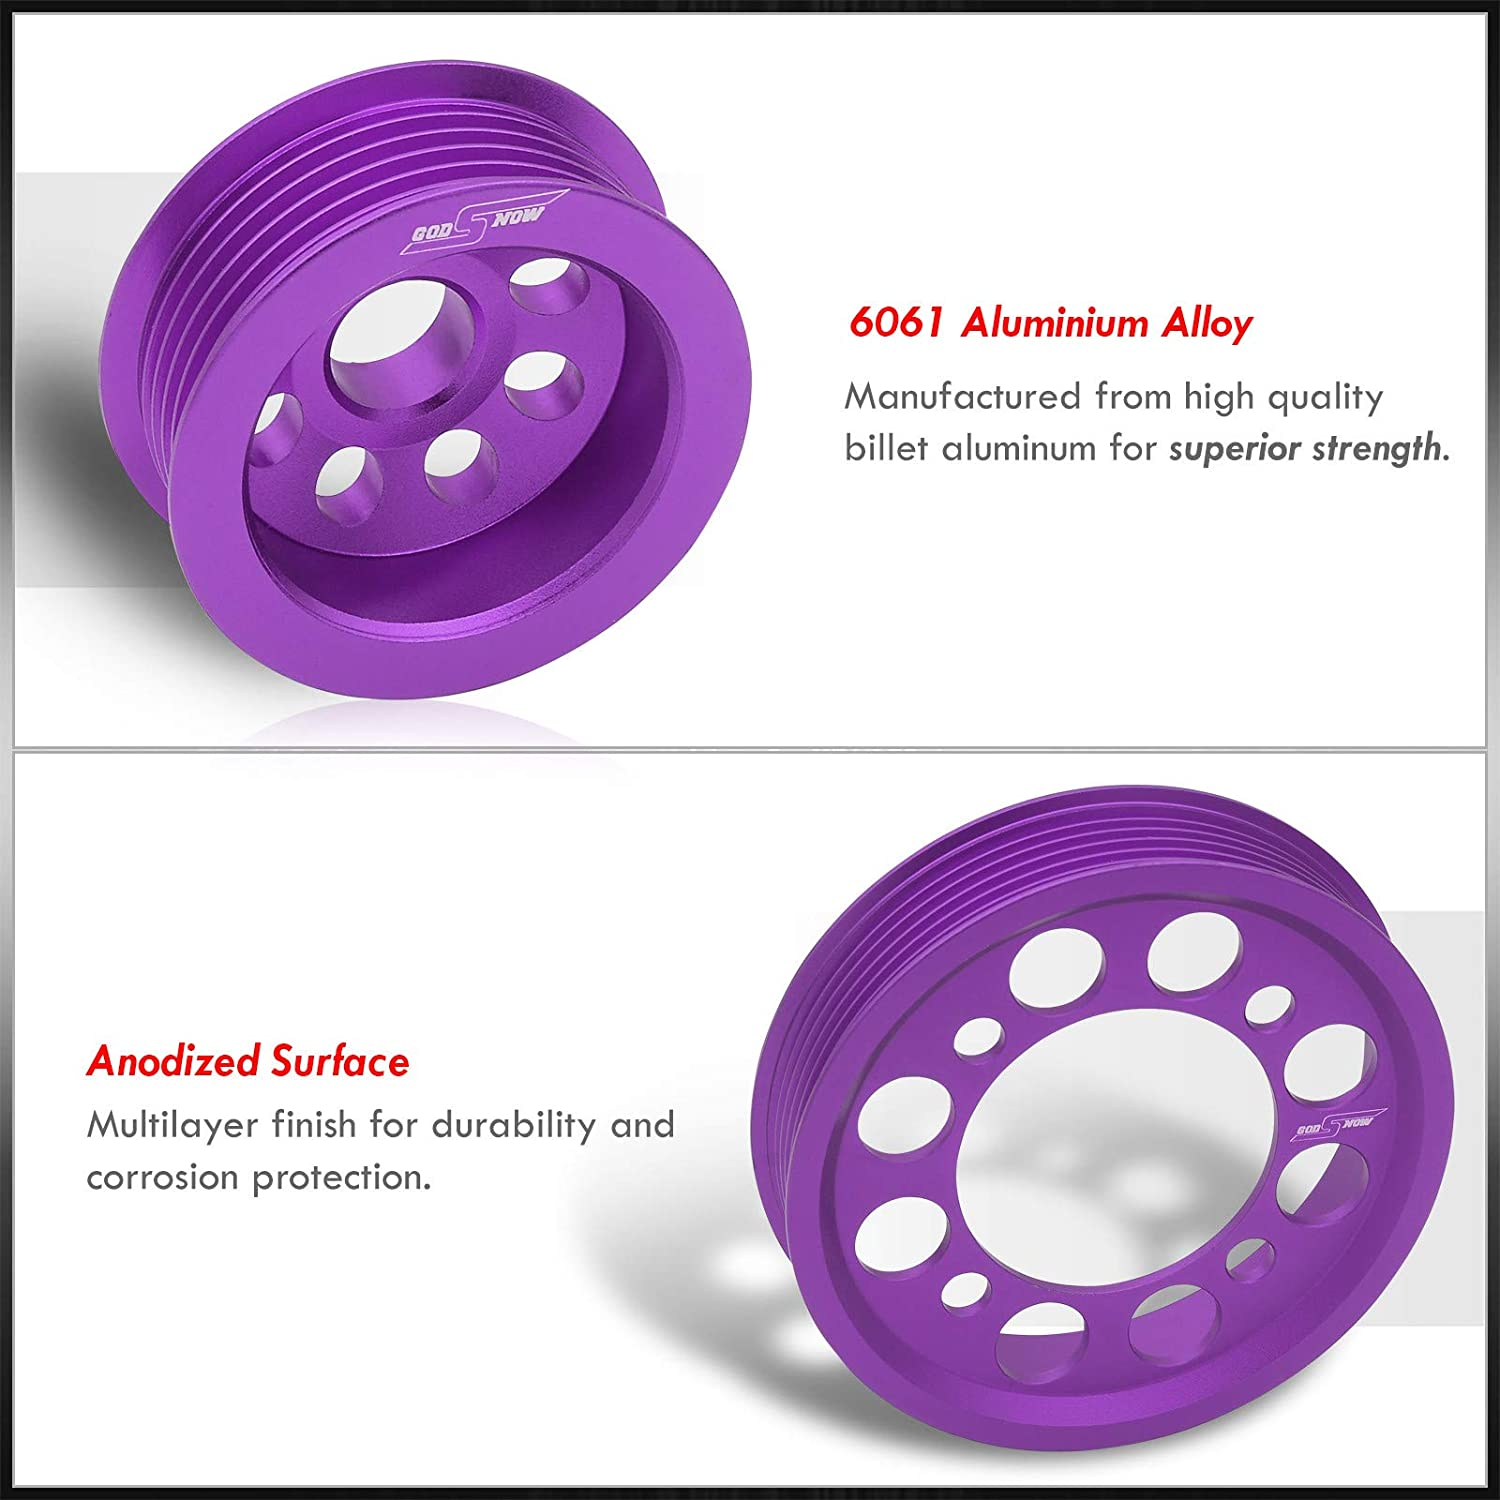 AJP Distributors JDM Performance Upgrade Light Weight Aluminum Crank Shaft Crankshaft Pulley Wheel Kit Purple For Supra MK4 MKIV JZA80 2JZ 2JZ-GTE Turbo 3.0L I6 Engine 1993 1994 1995 1996 1997 1998